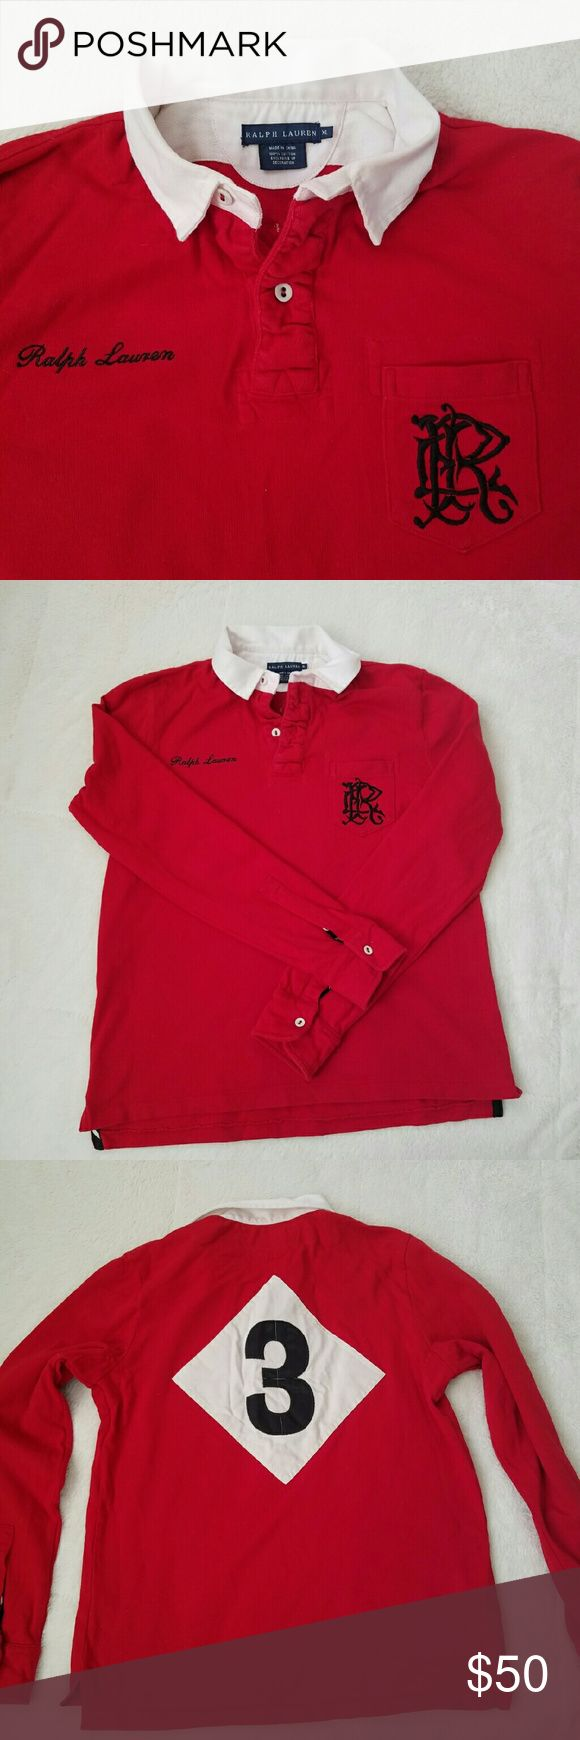 ⤵PRICE DROP⤵RL Women's Rugby Shirt NEVER WORN! Ralph Lauren women's Rugby Shirt in red with Navy embroidery. Nice, heavy cotton shirt with a white collar. Super comfy casual shirt! Love this one. Ralph Lauren Tops